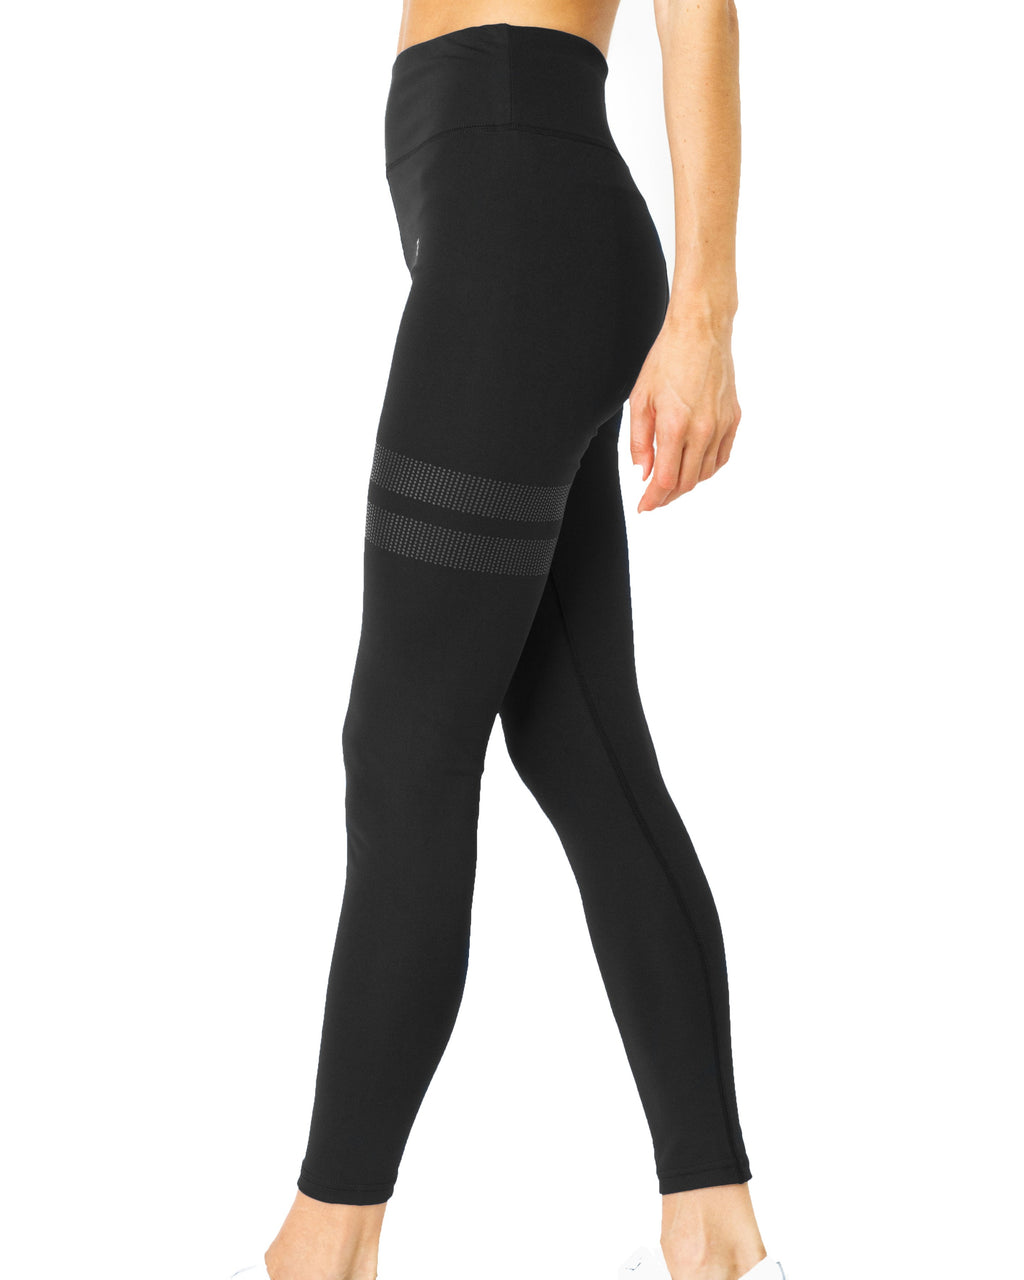 TO BAY Leggings - Black